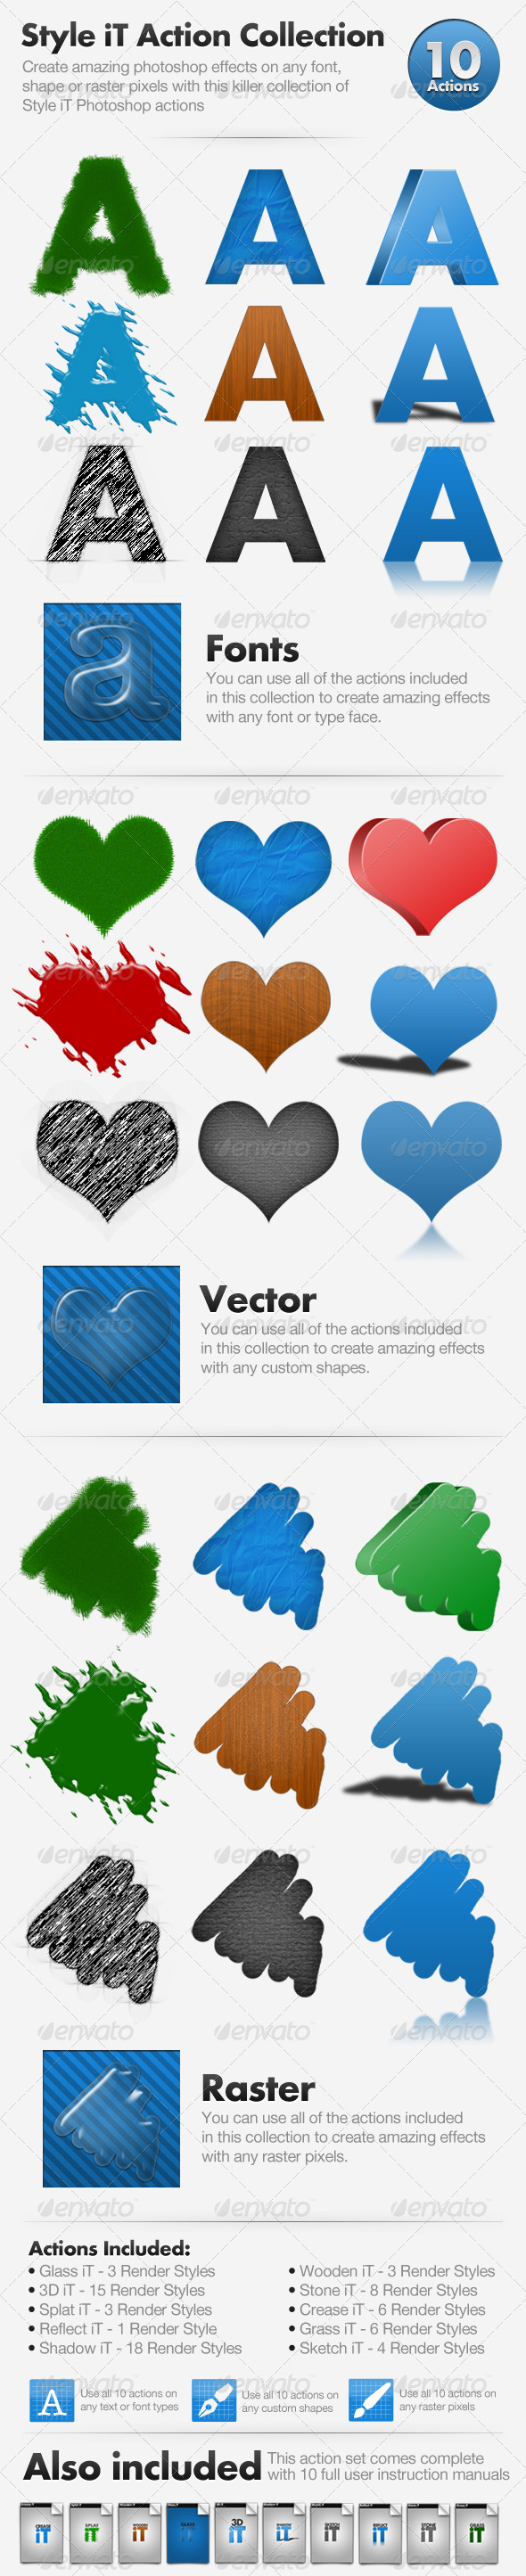 GraphicRiver Style iT Action Collection 10 actions 149074